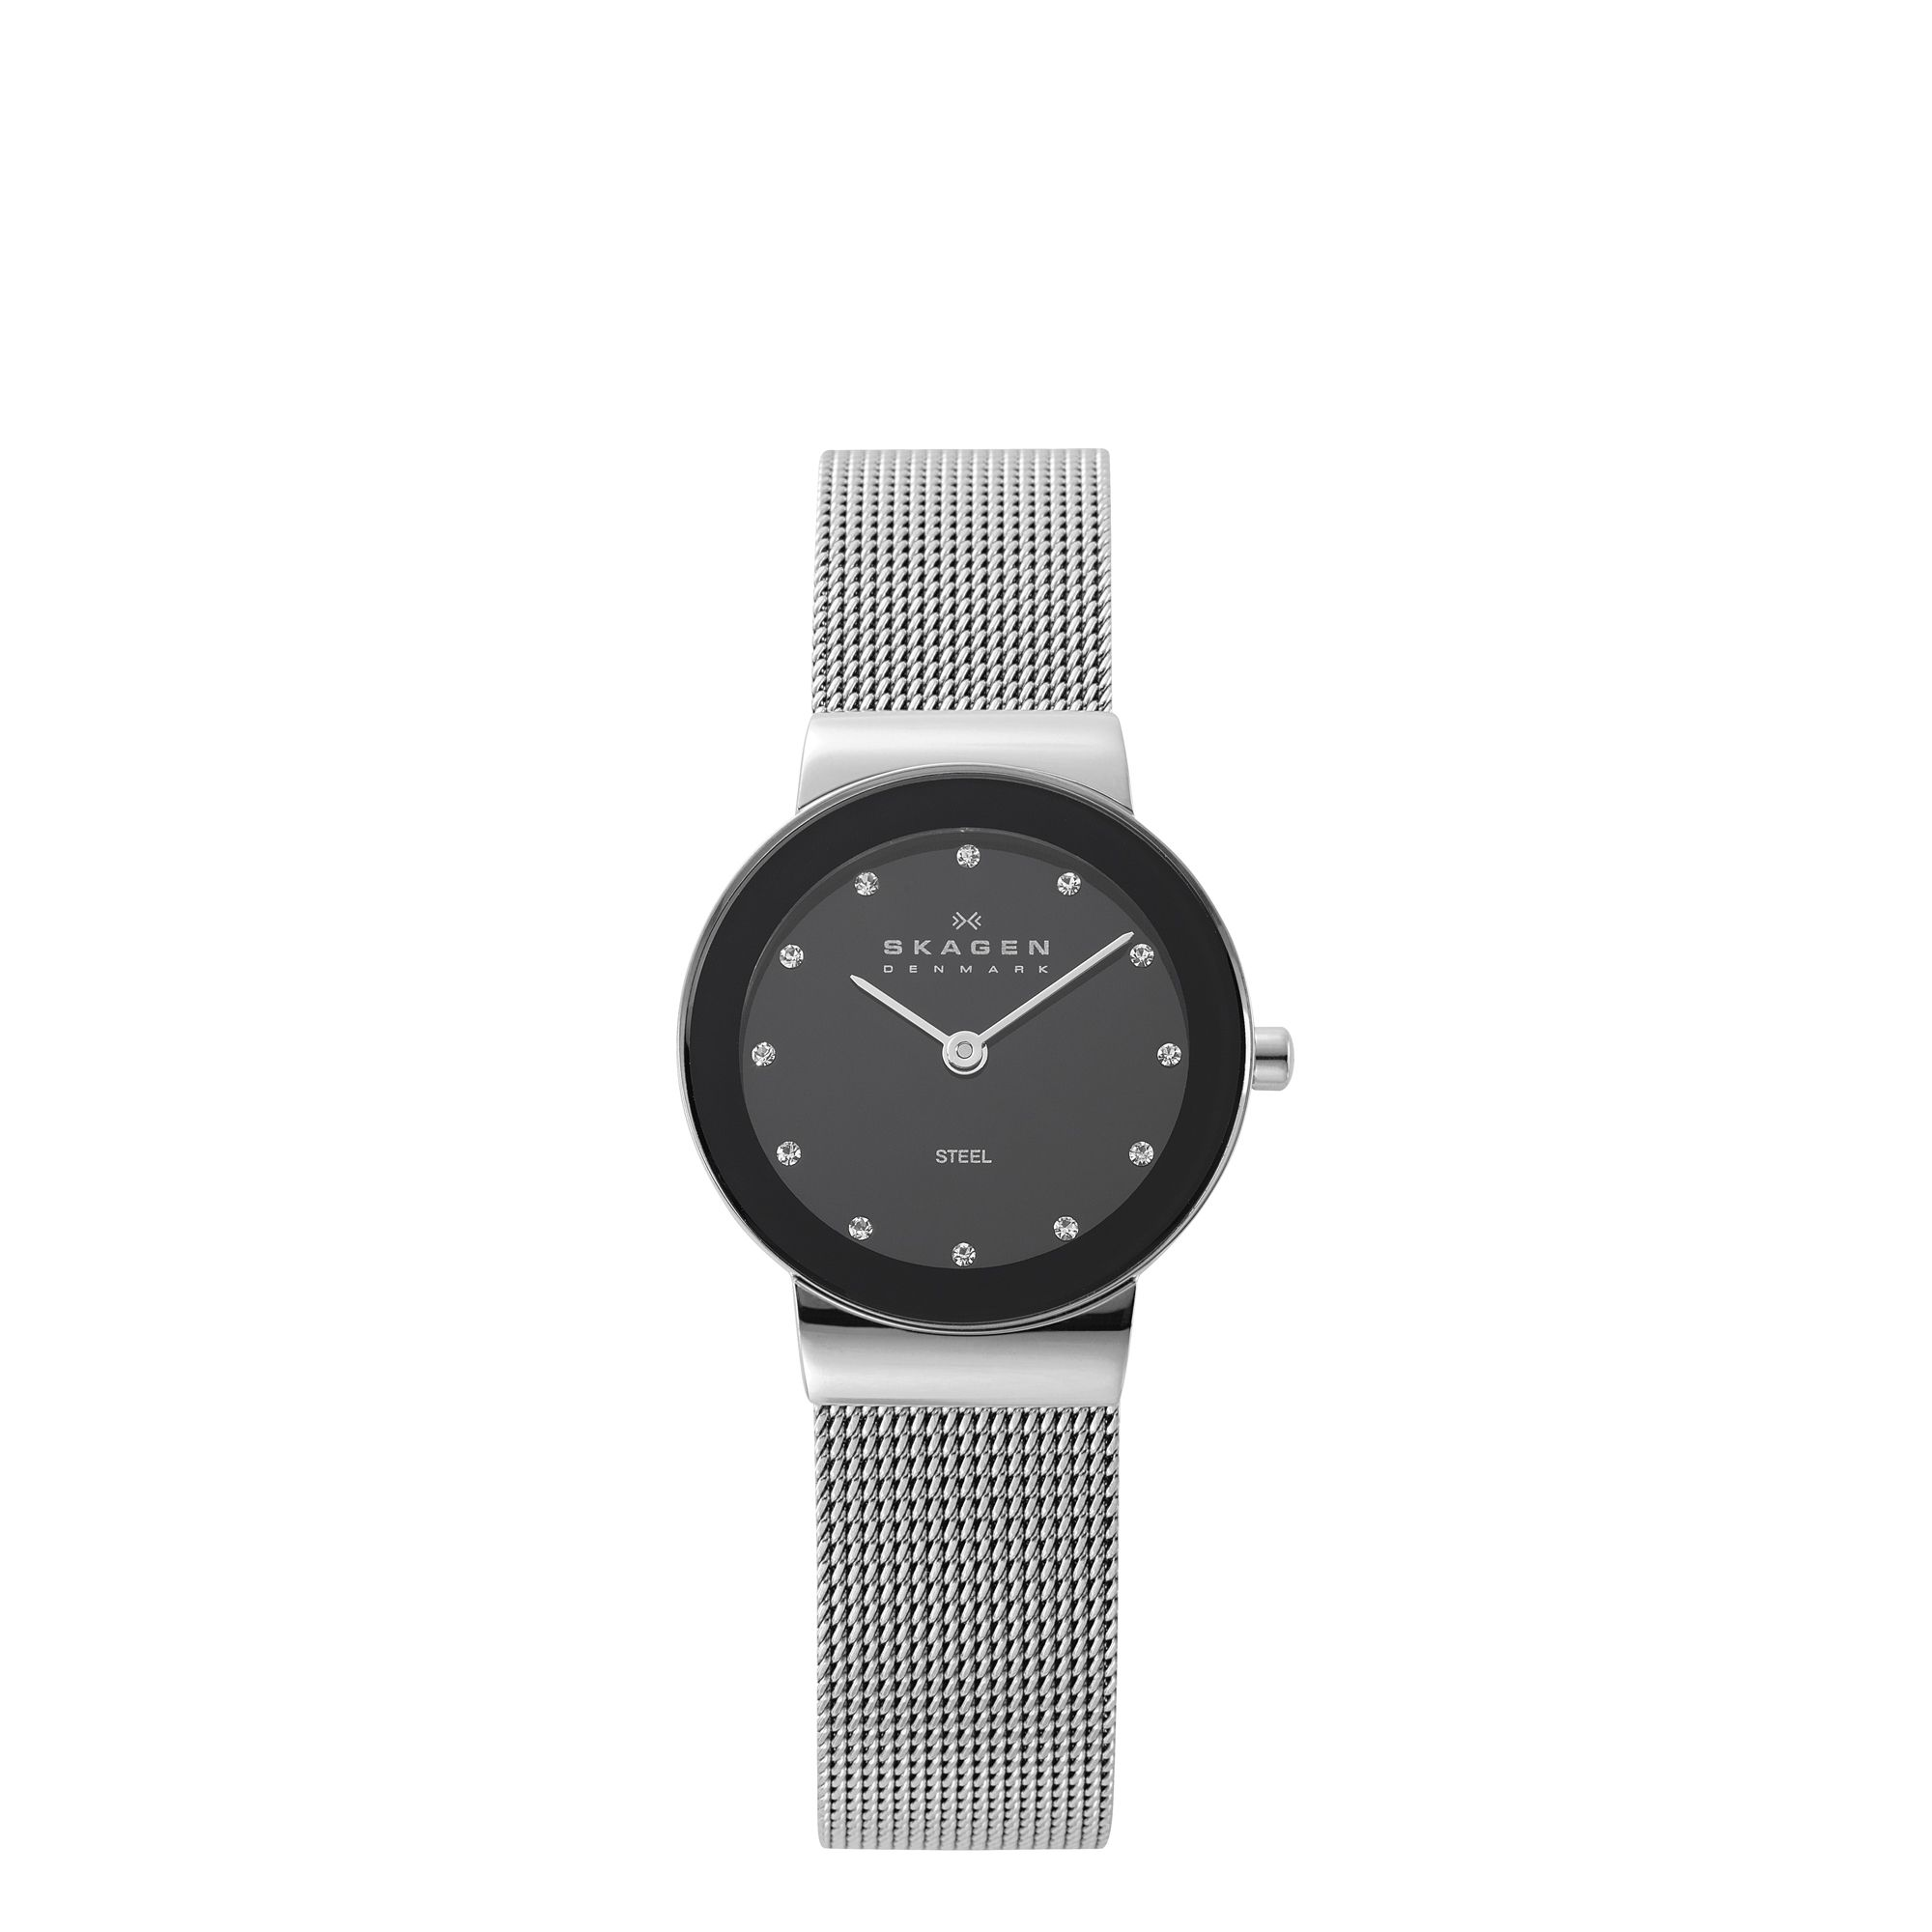 358SSSBD Silver case steel mesh classic watch